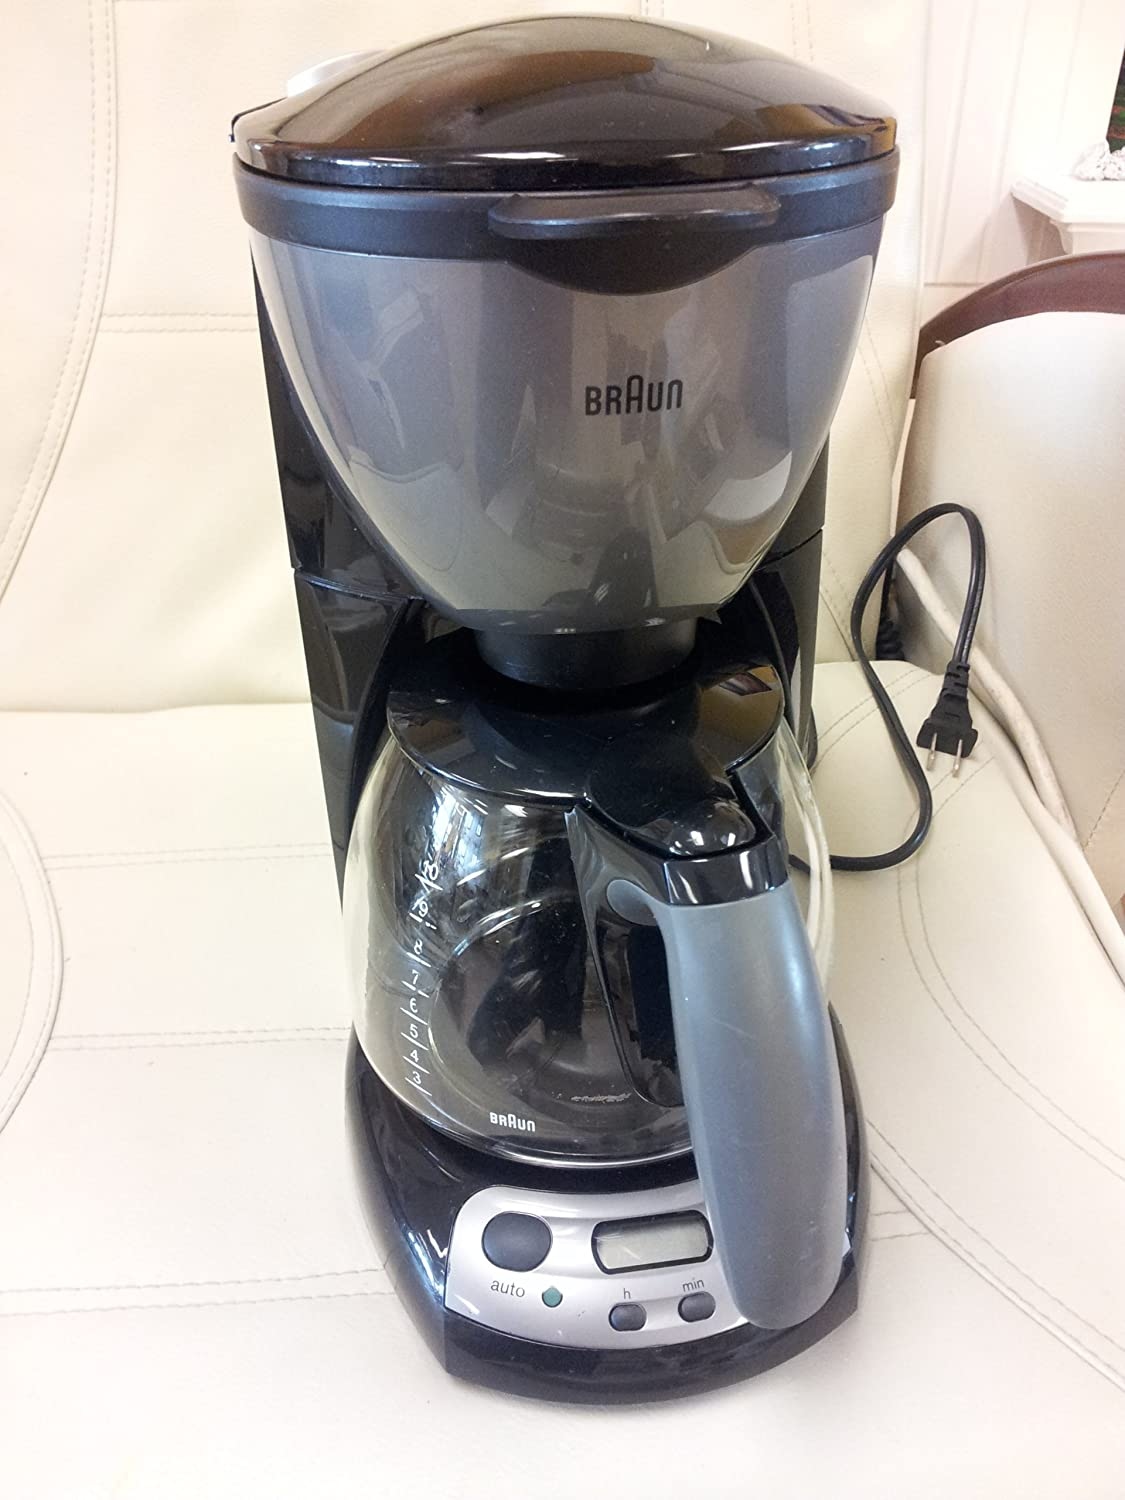 Braun AromaDeluxe 10 Cup Programmable Coffee Maker/Type 3105